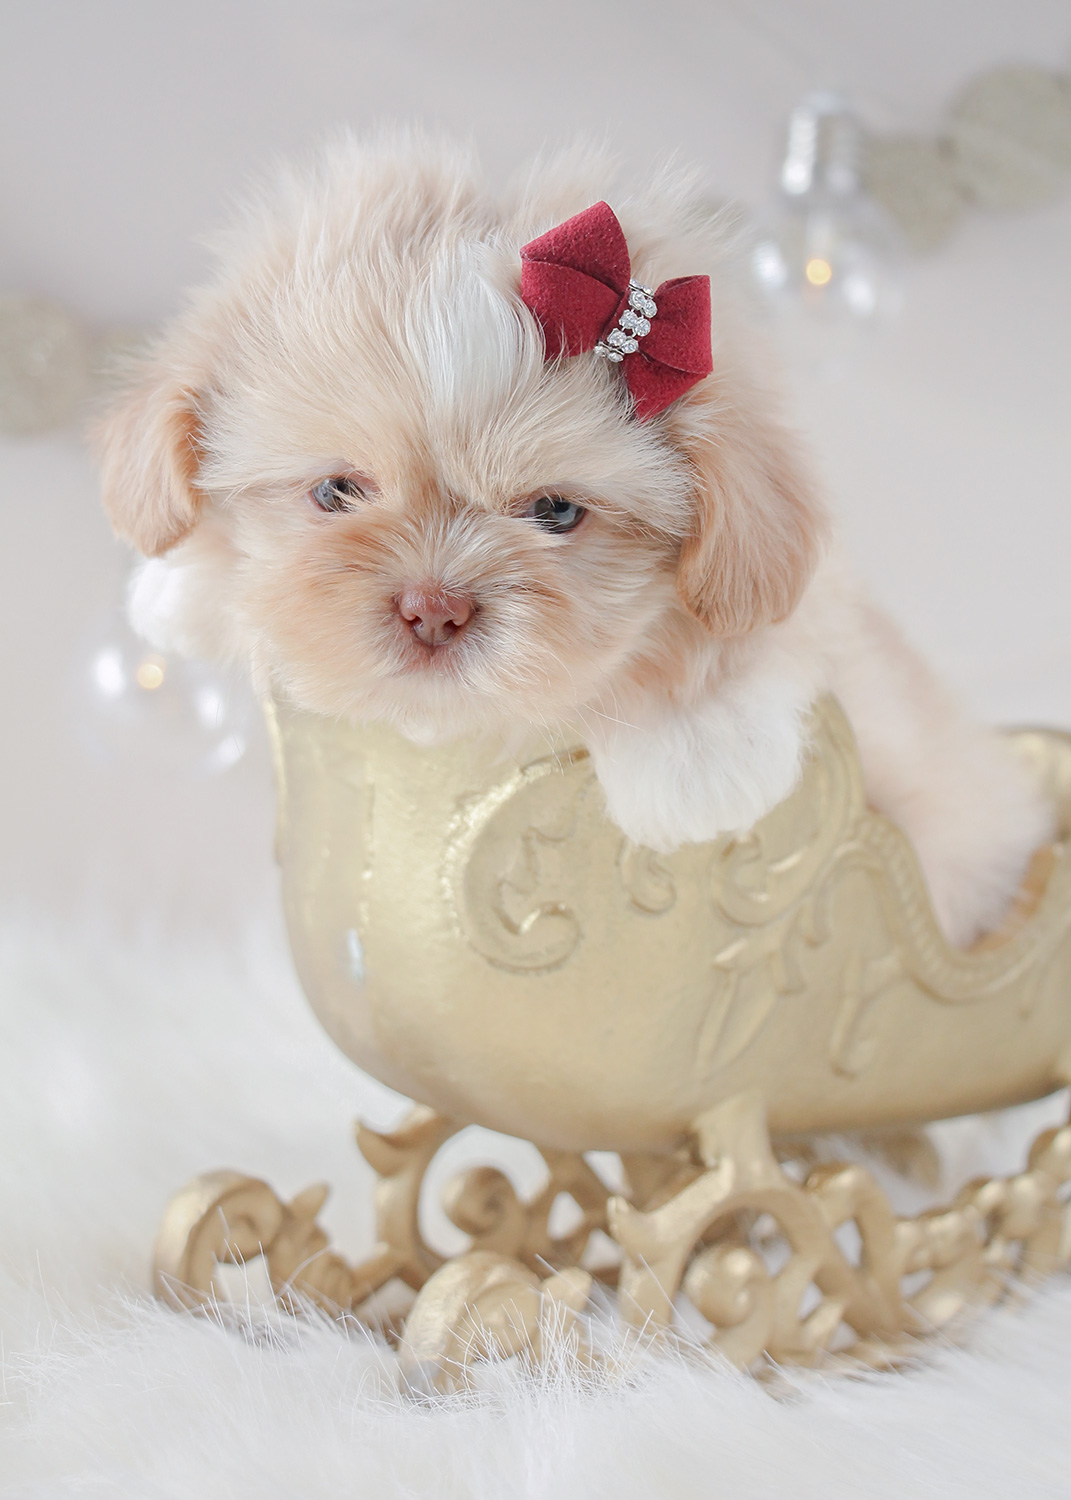 For Sale #329 Teacup Puppies Shih Tzu Puppy